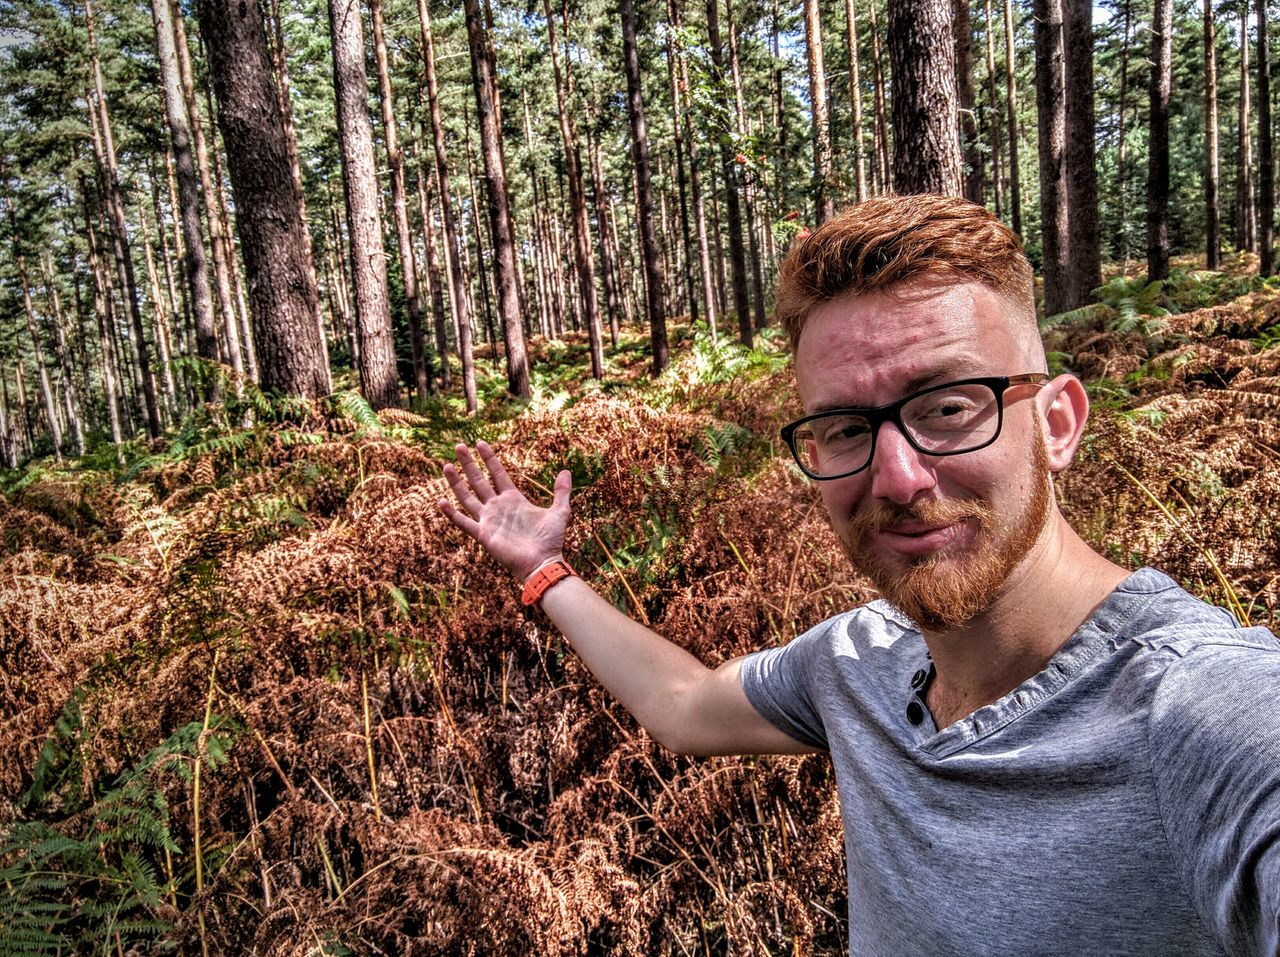 forest, tree, nature, one person, tree trunk, outdoors, young adult, woodland, casual clothing, day, real people, scenics, beauty in nature, smiling, portrait, one man only, adults only, adult, people, only men